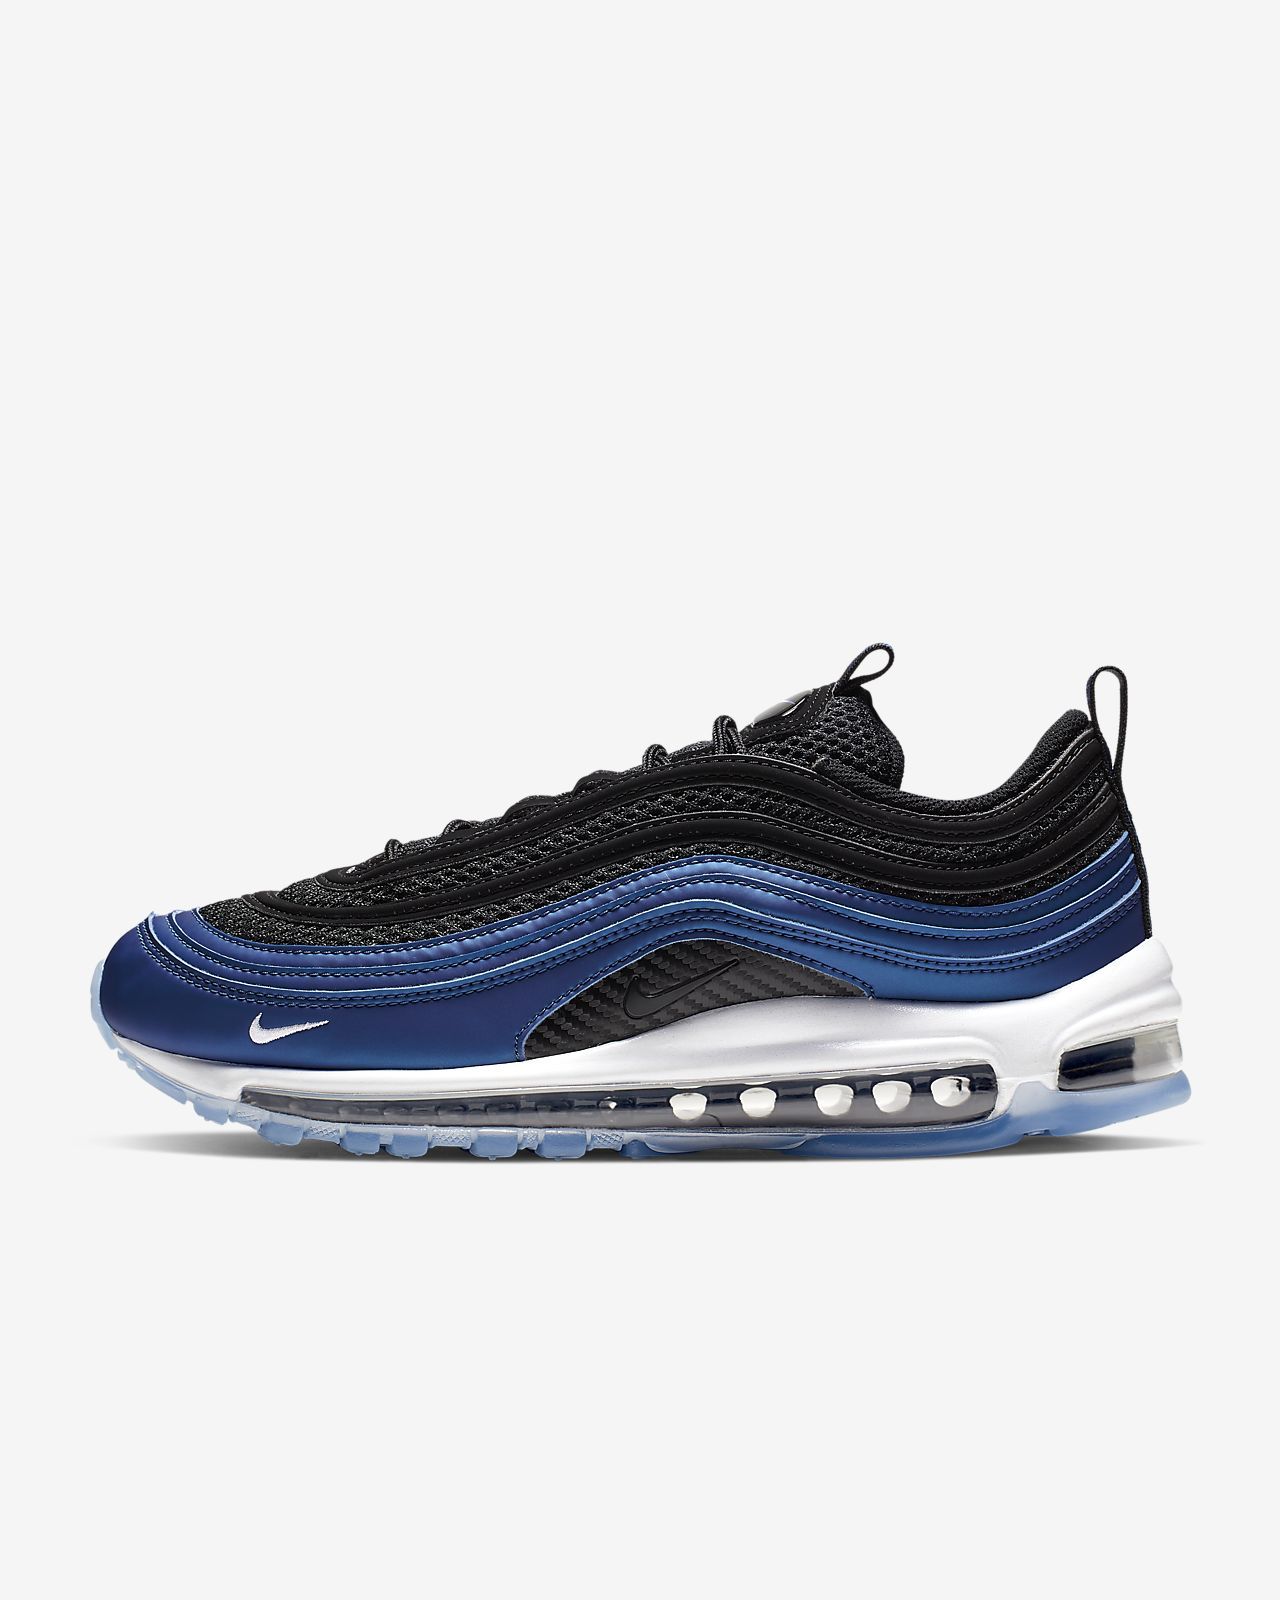 Nike Air Max 97 Women's Iridescent Shoe. Nike GB